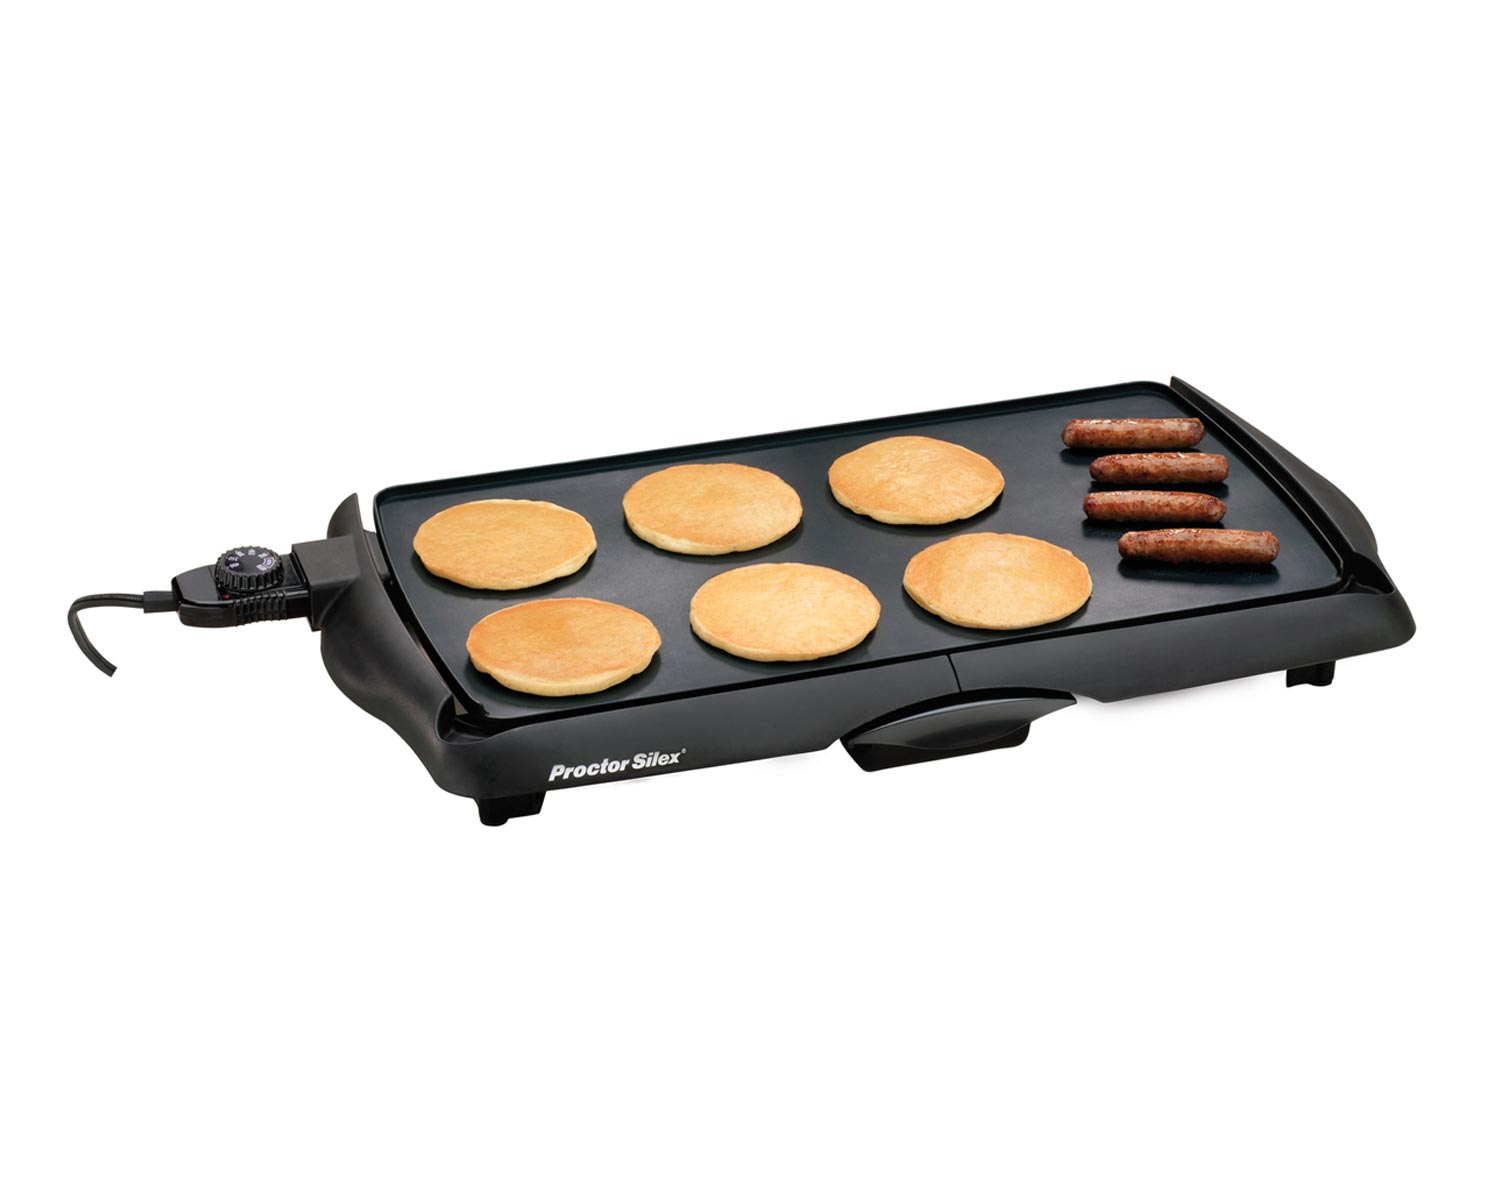 Proctor Silex Electric Griddle Nonstick Extra Large - Model 38513P